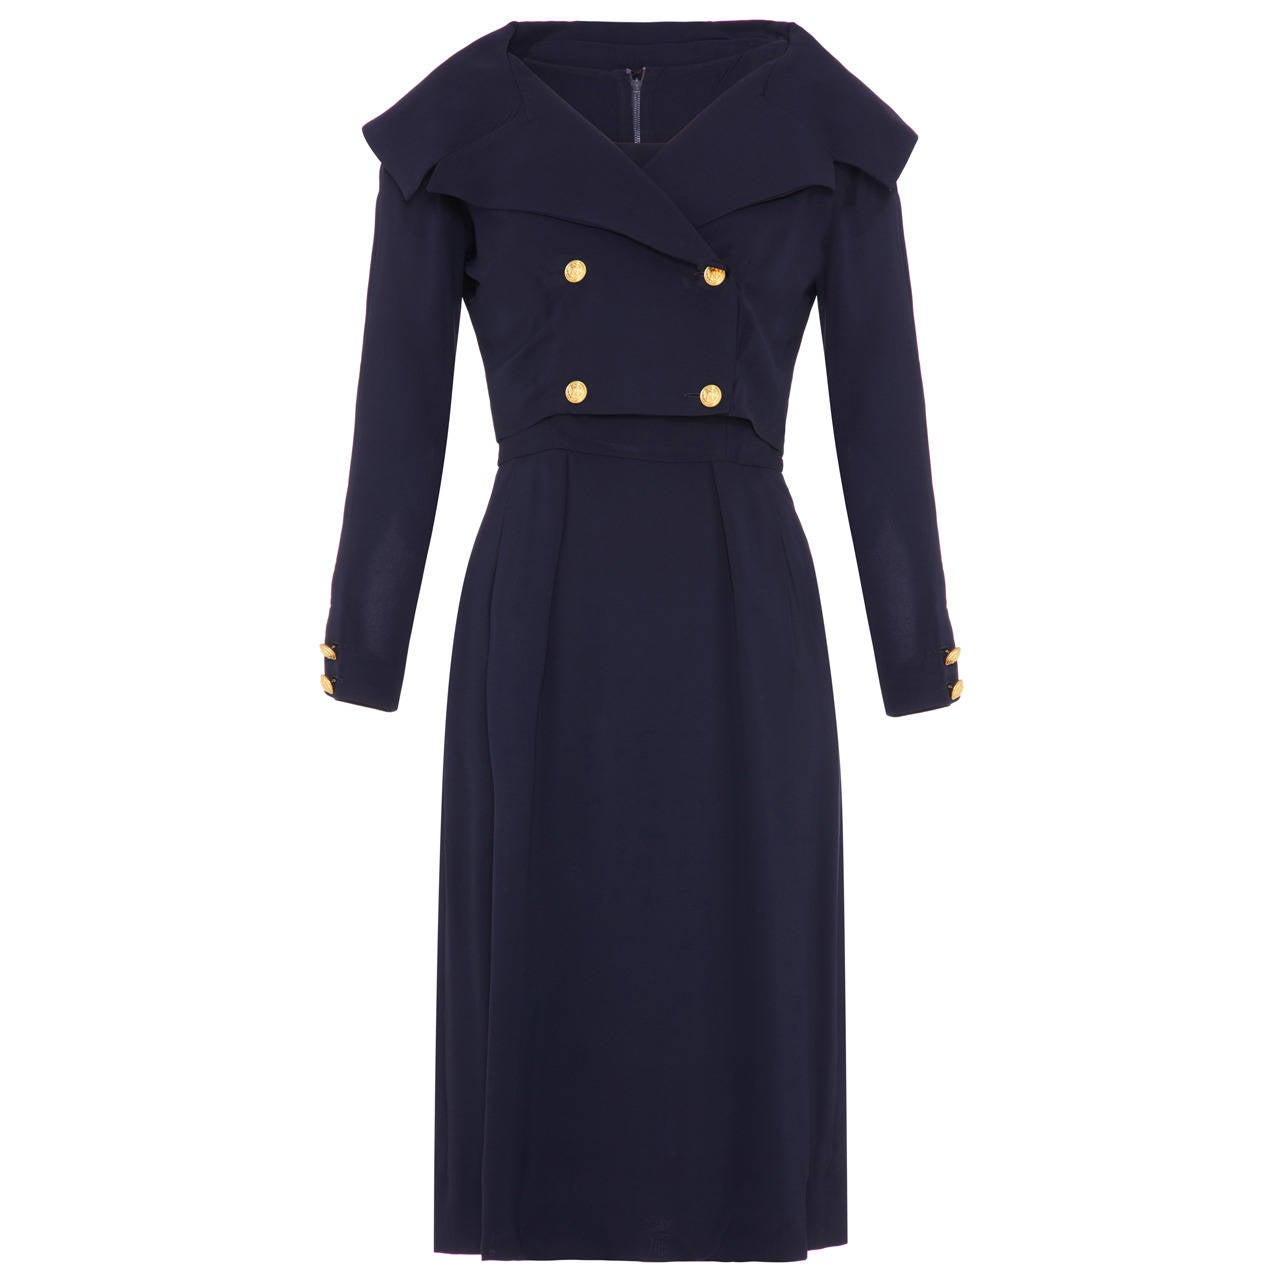 1960s Mr Mort Navy Dress and Jacket Suit For Sale